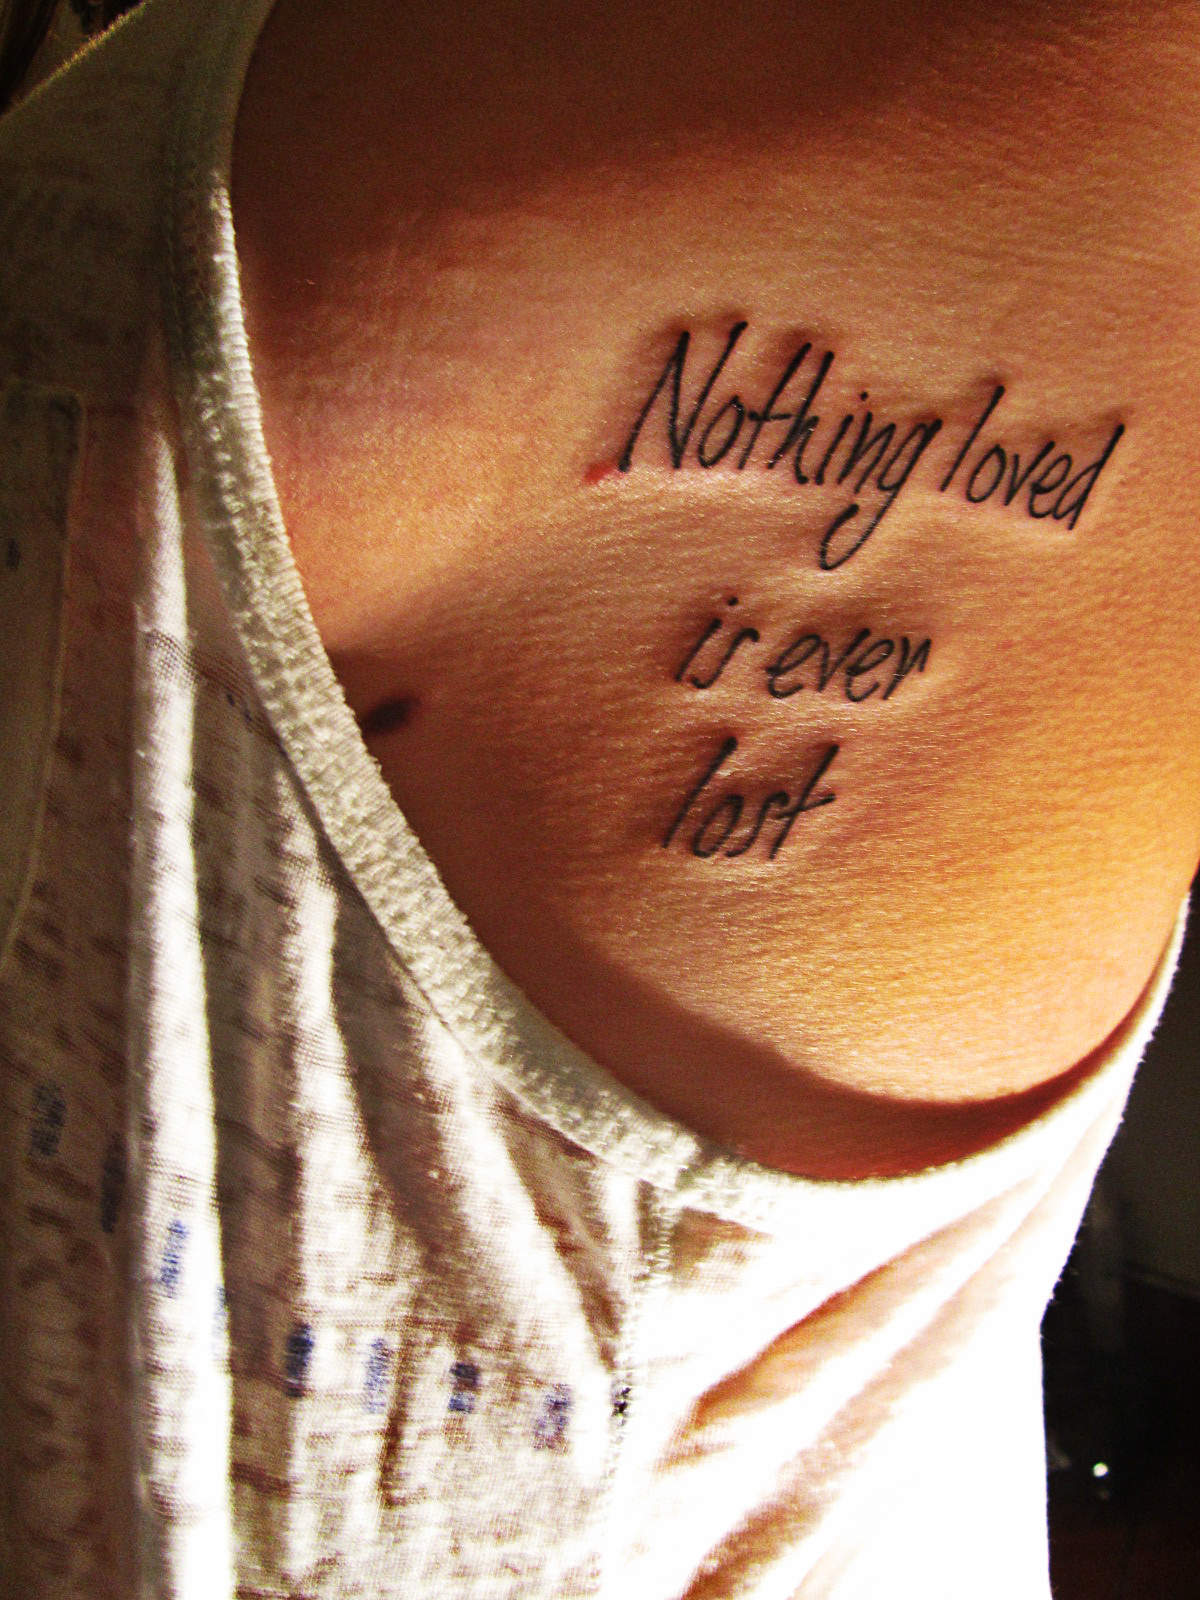 Nothing loved is ever lost